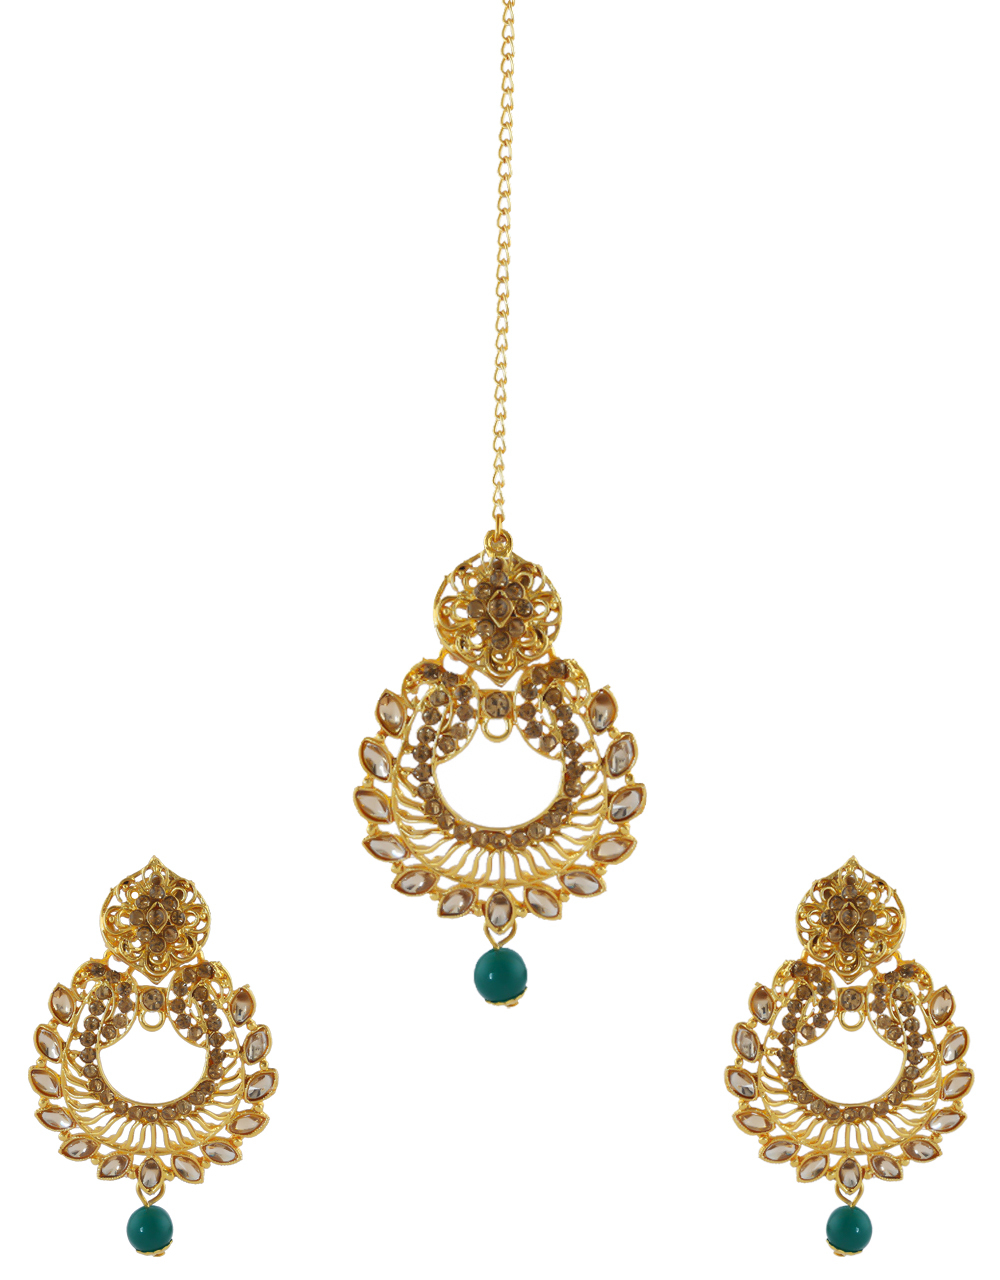 Green Colour Gold Finish Earring Studded With Stones Fancy Earrings